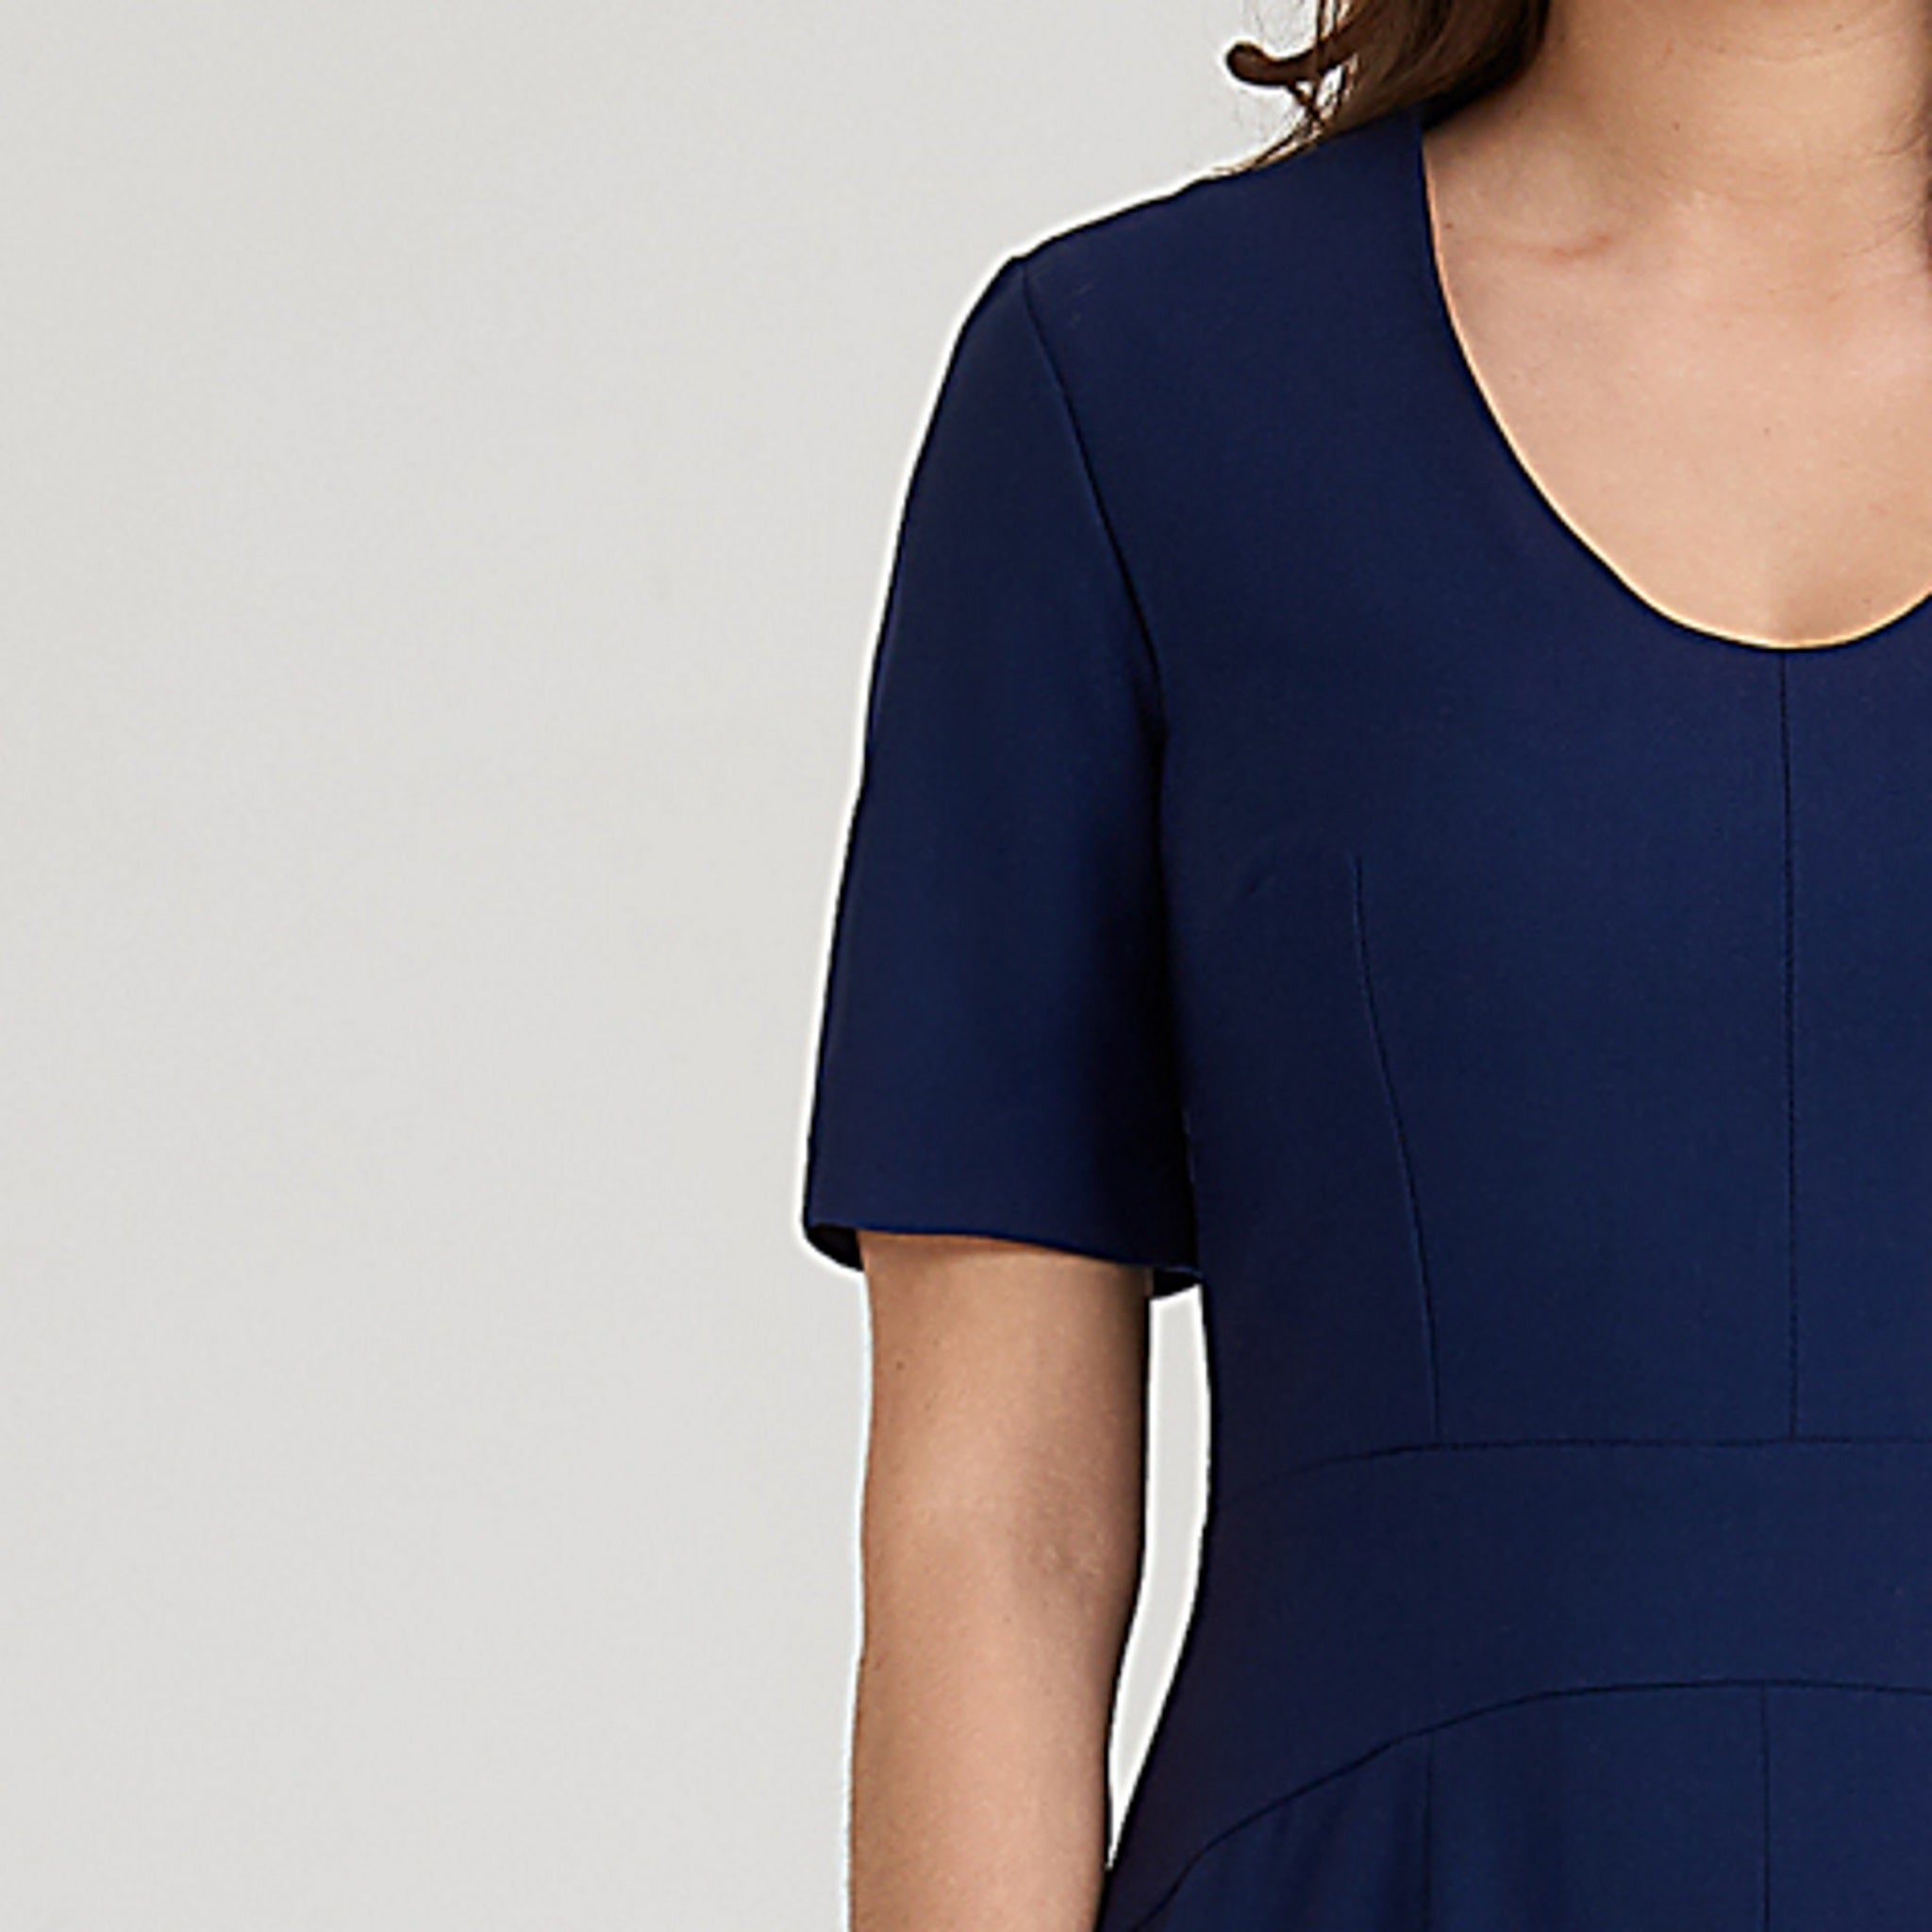 Short-sleeve midi dress with v-neck and a-line skirt made from luxurious stretch wool in blue